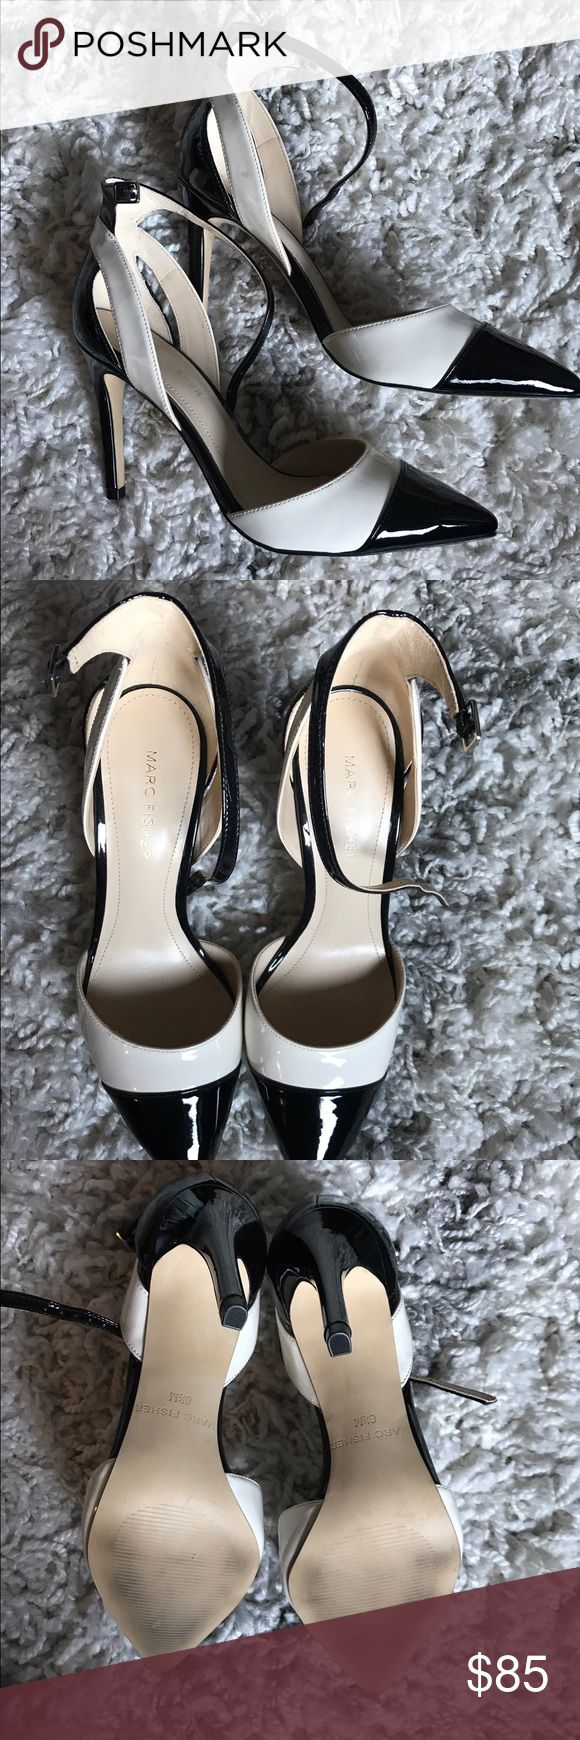 Marc Fisher Black and white strappy heels Awesome work heels, 3.5 inches, super comfortable, only worn once. Marc Fisher Shoes Heels